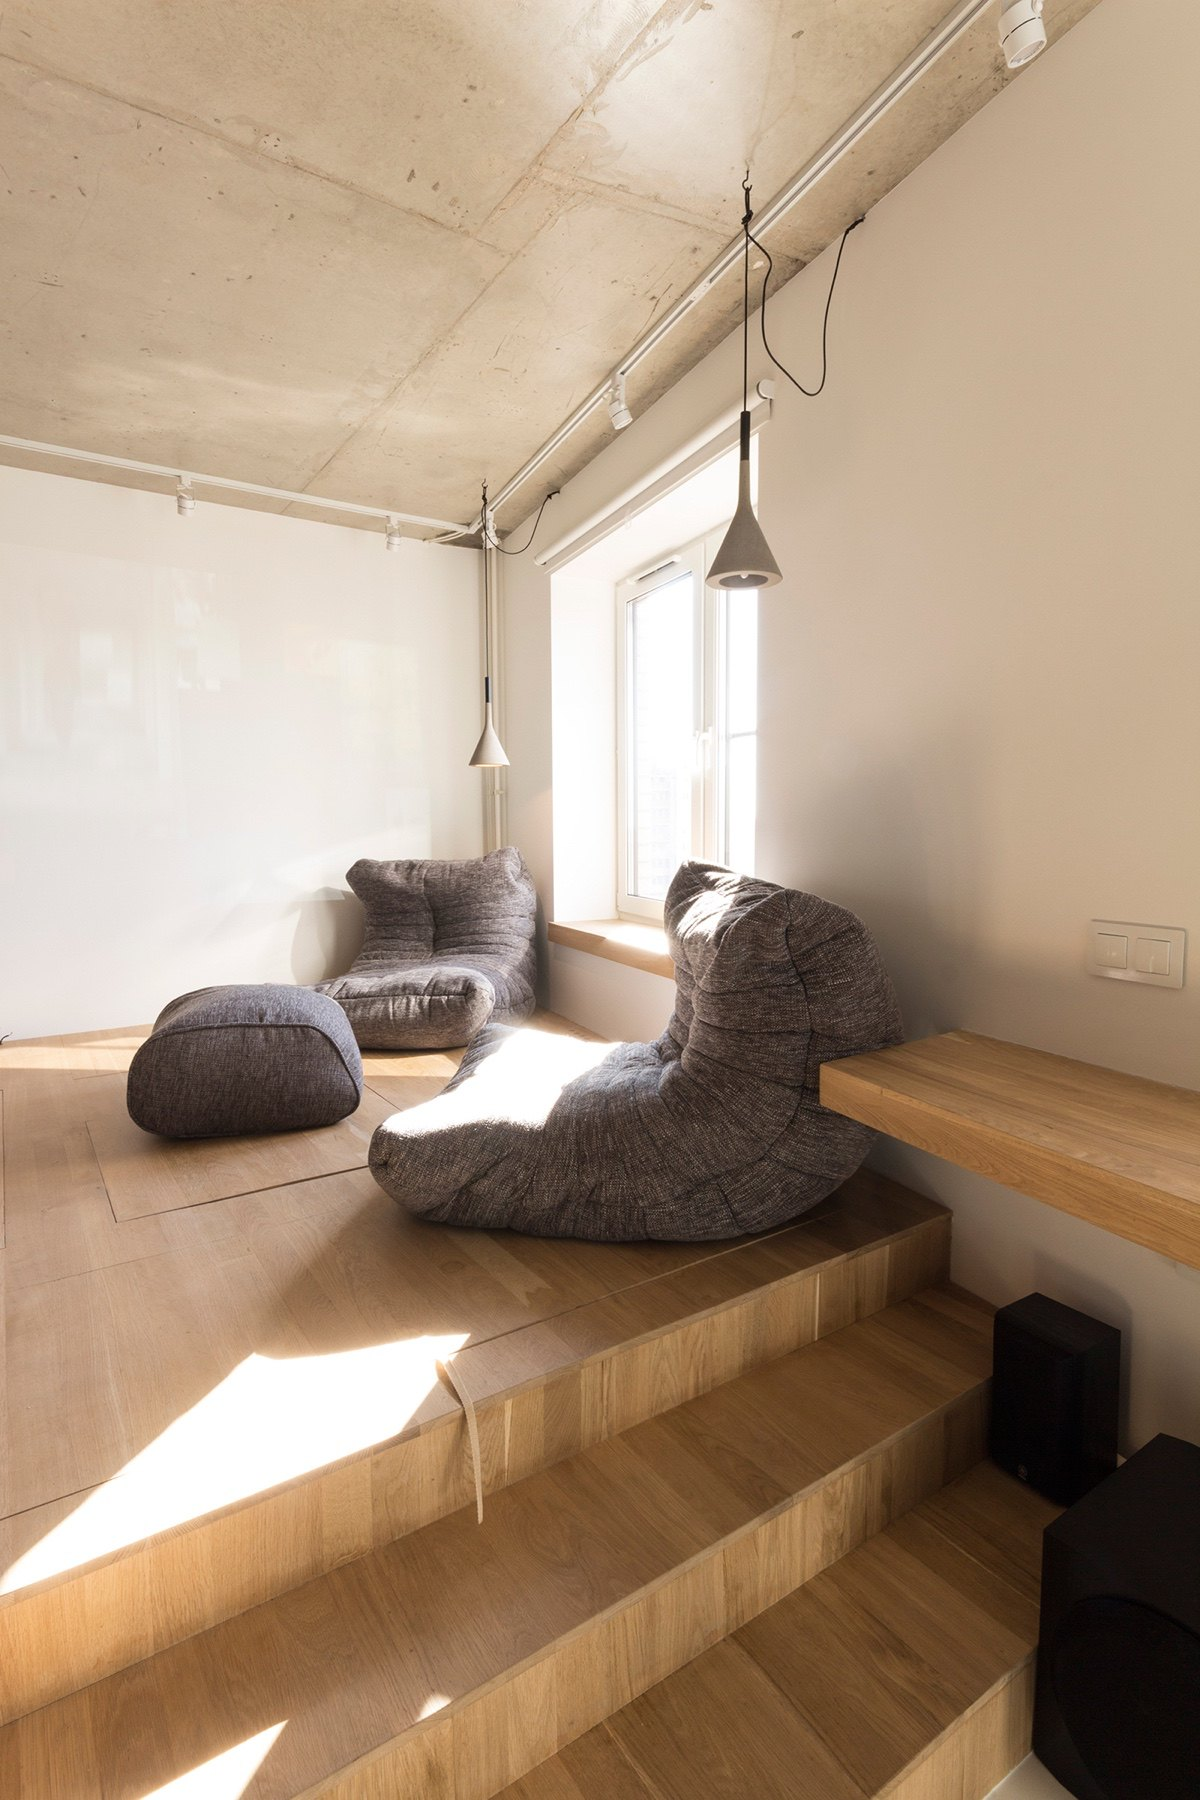 Upper Level Relaxation Space Wooden Grey Hanging Light Simple Square Window - Super small studio apartment under 50 square meters includes floor plan